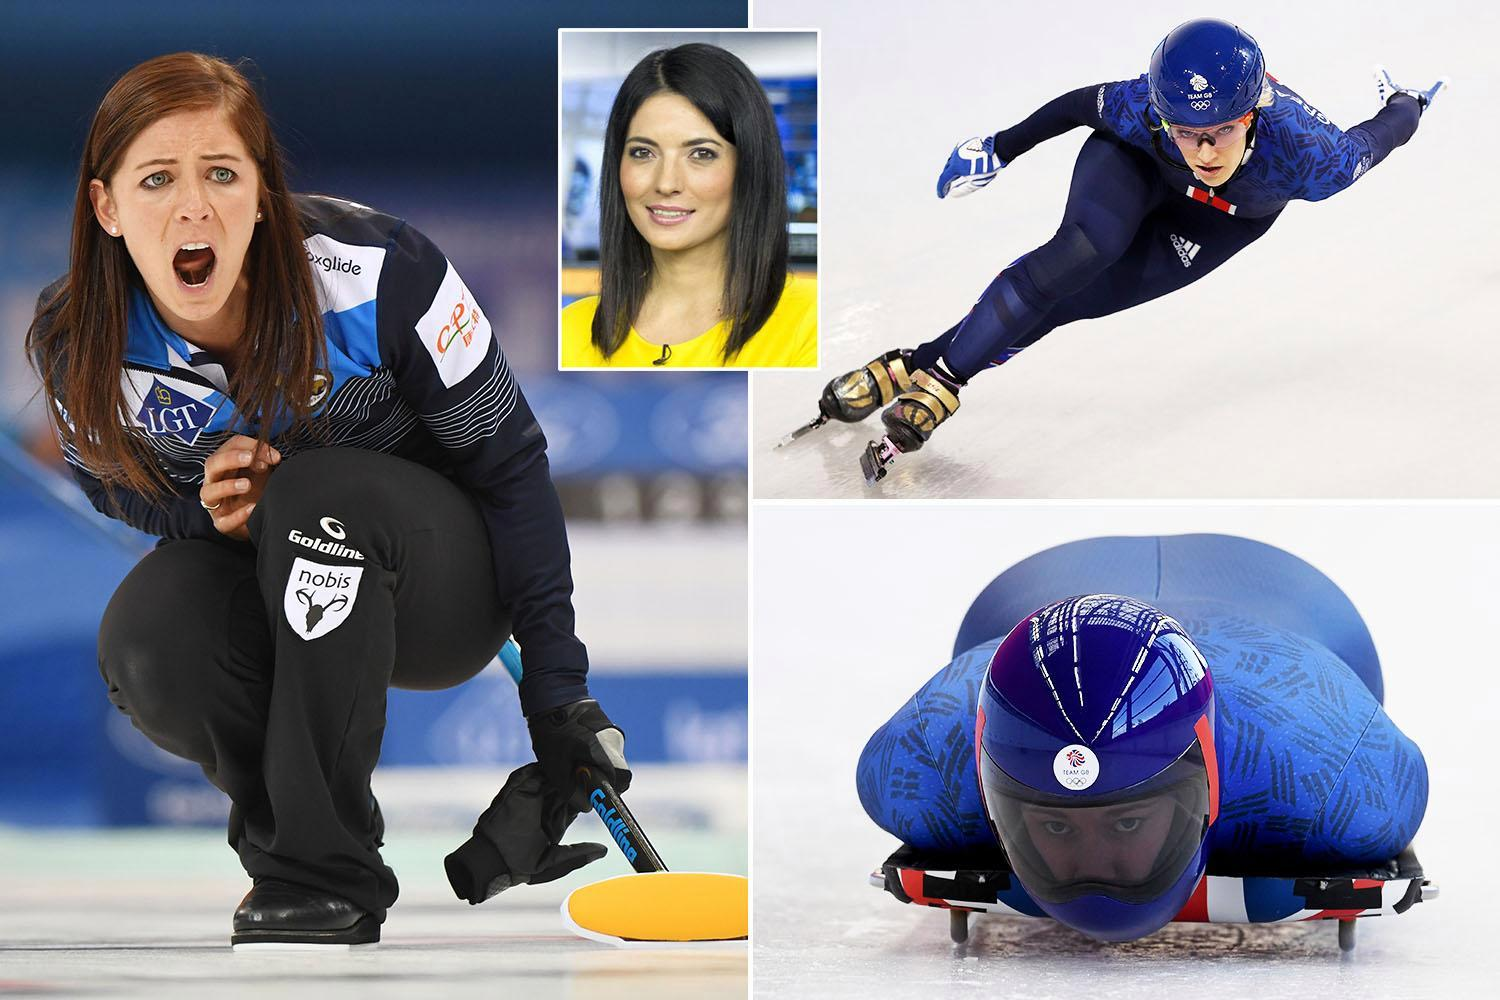 Natalie Sawyer: Team GB's girls can fire a record Winter Olympics medal haul in PyeongChang